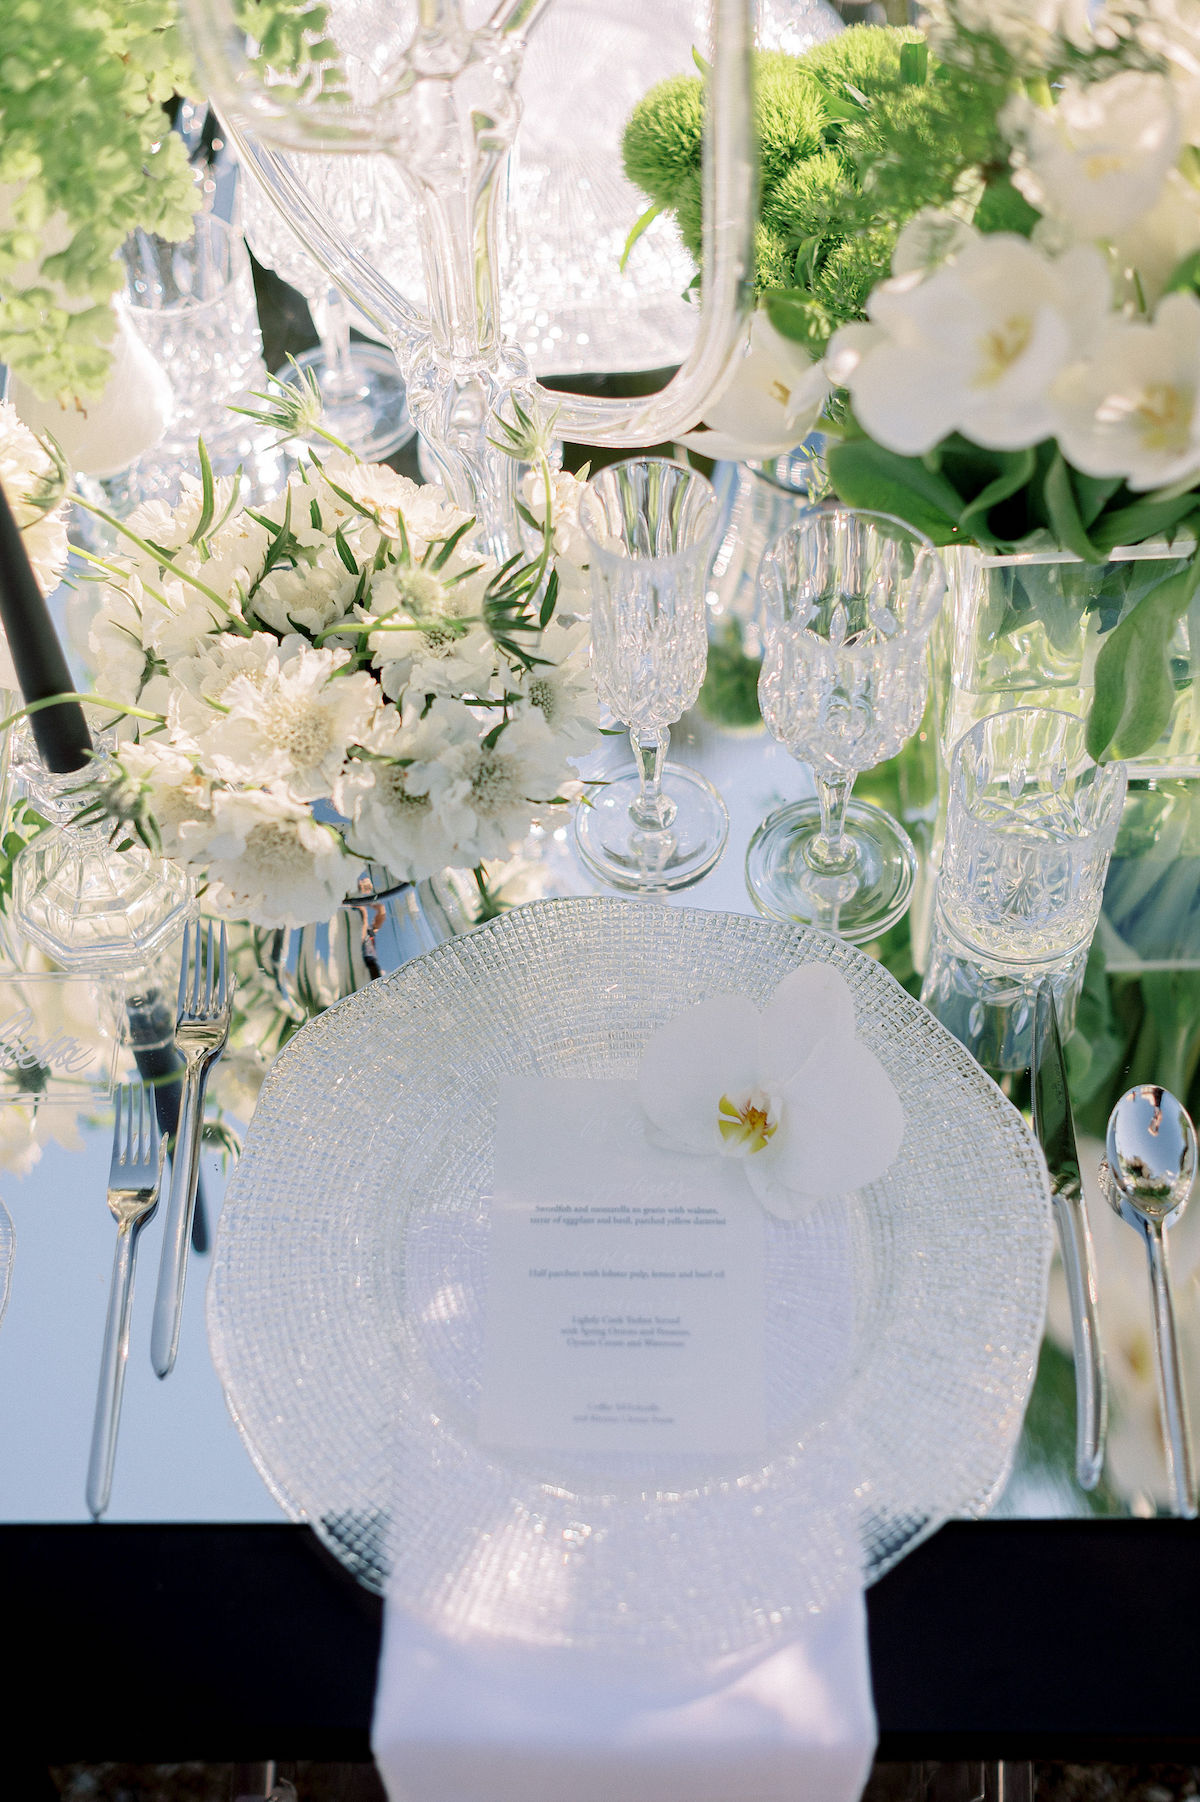 Luxury wedding place setting with mirror and crystal details